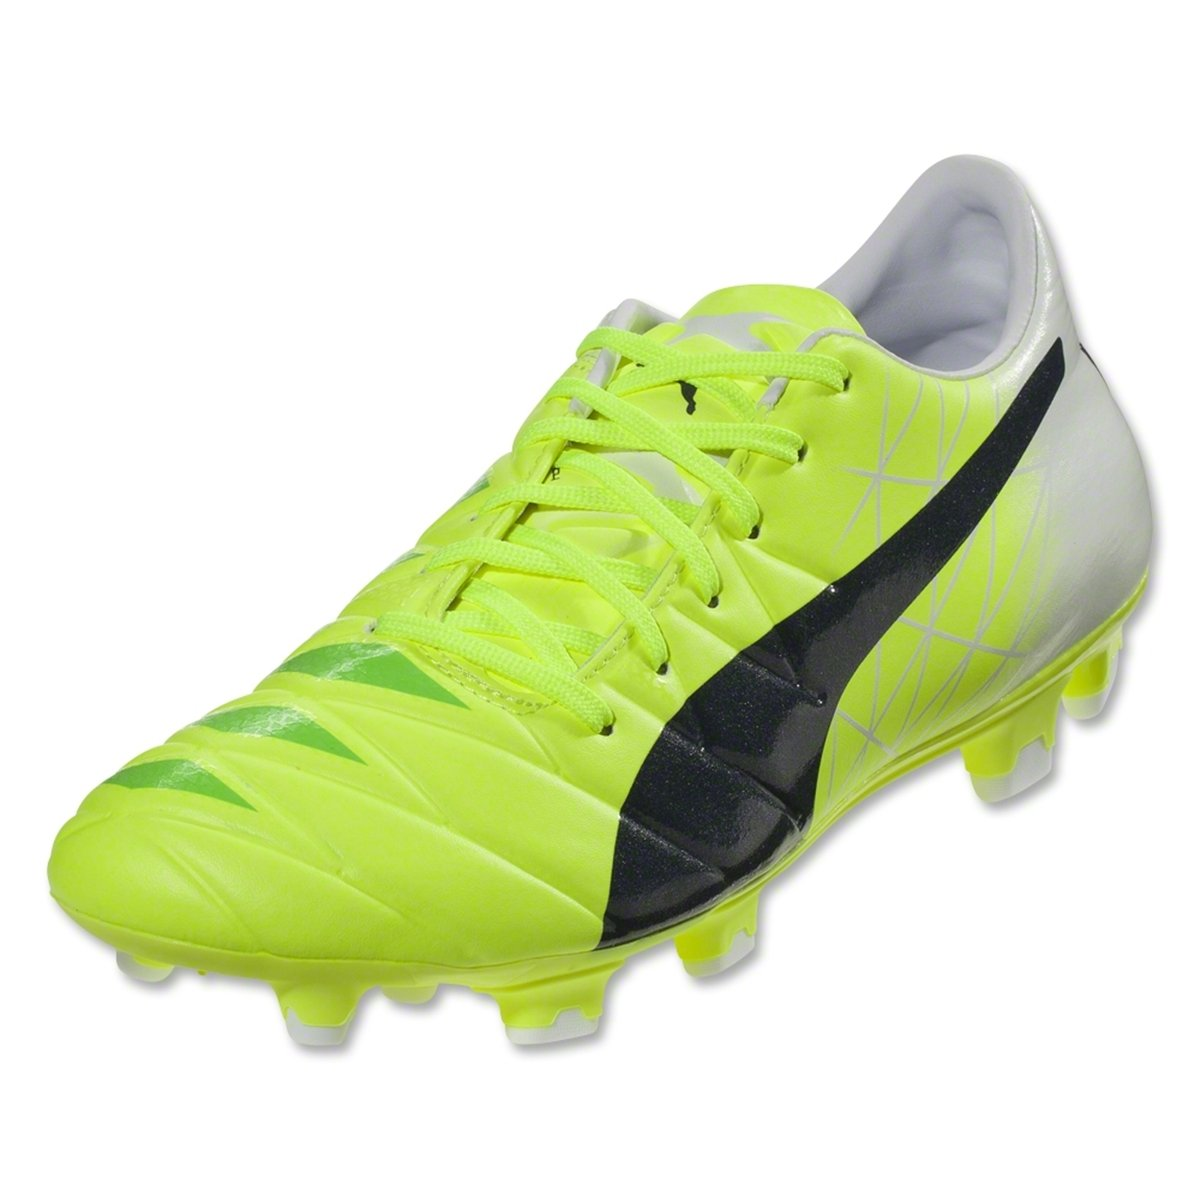 Flourescent Yellow Puma Youth evoACCURACY FG Firm Ground Soccer Cleats 3 1//2 US